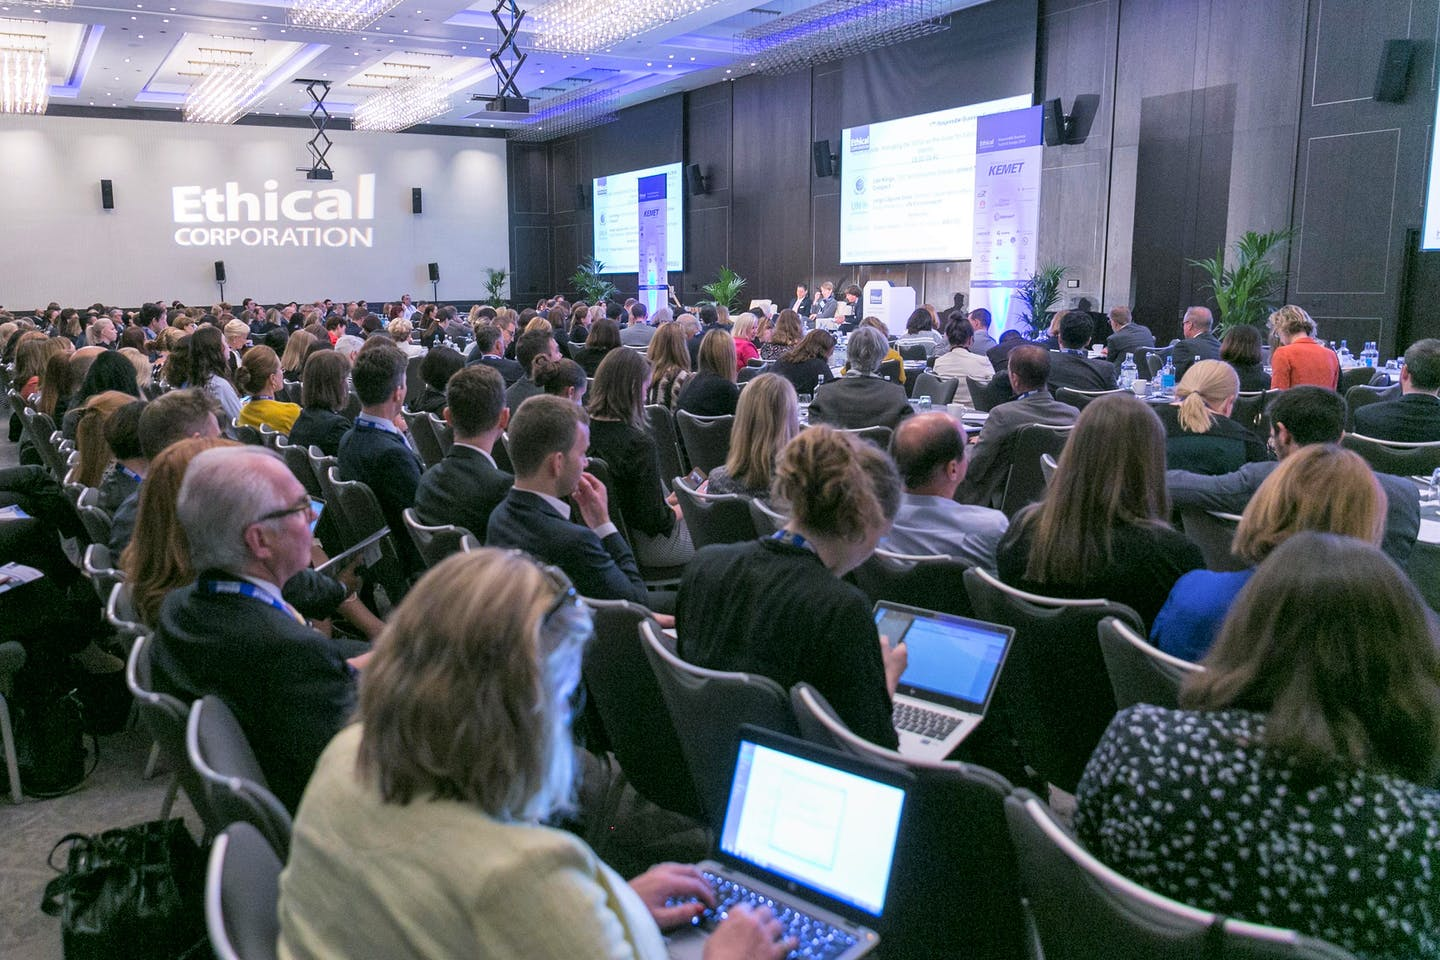 Mayor's of leading cities in North America join Ethical Corporation's Responsible Business Summit New York 2019